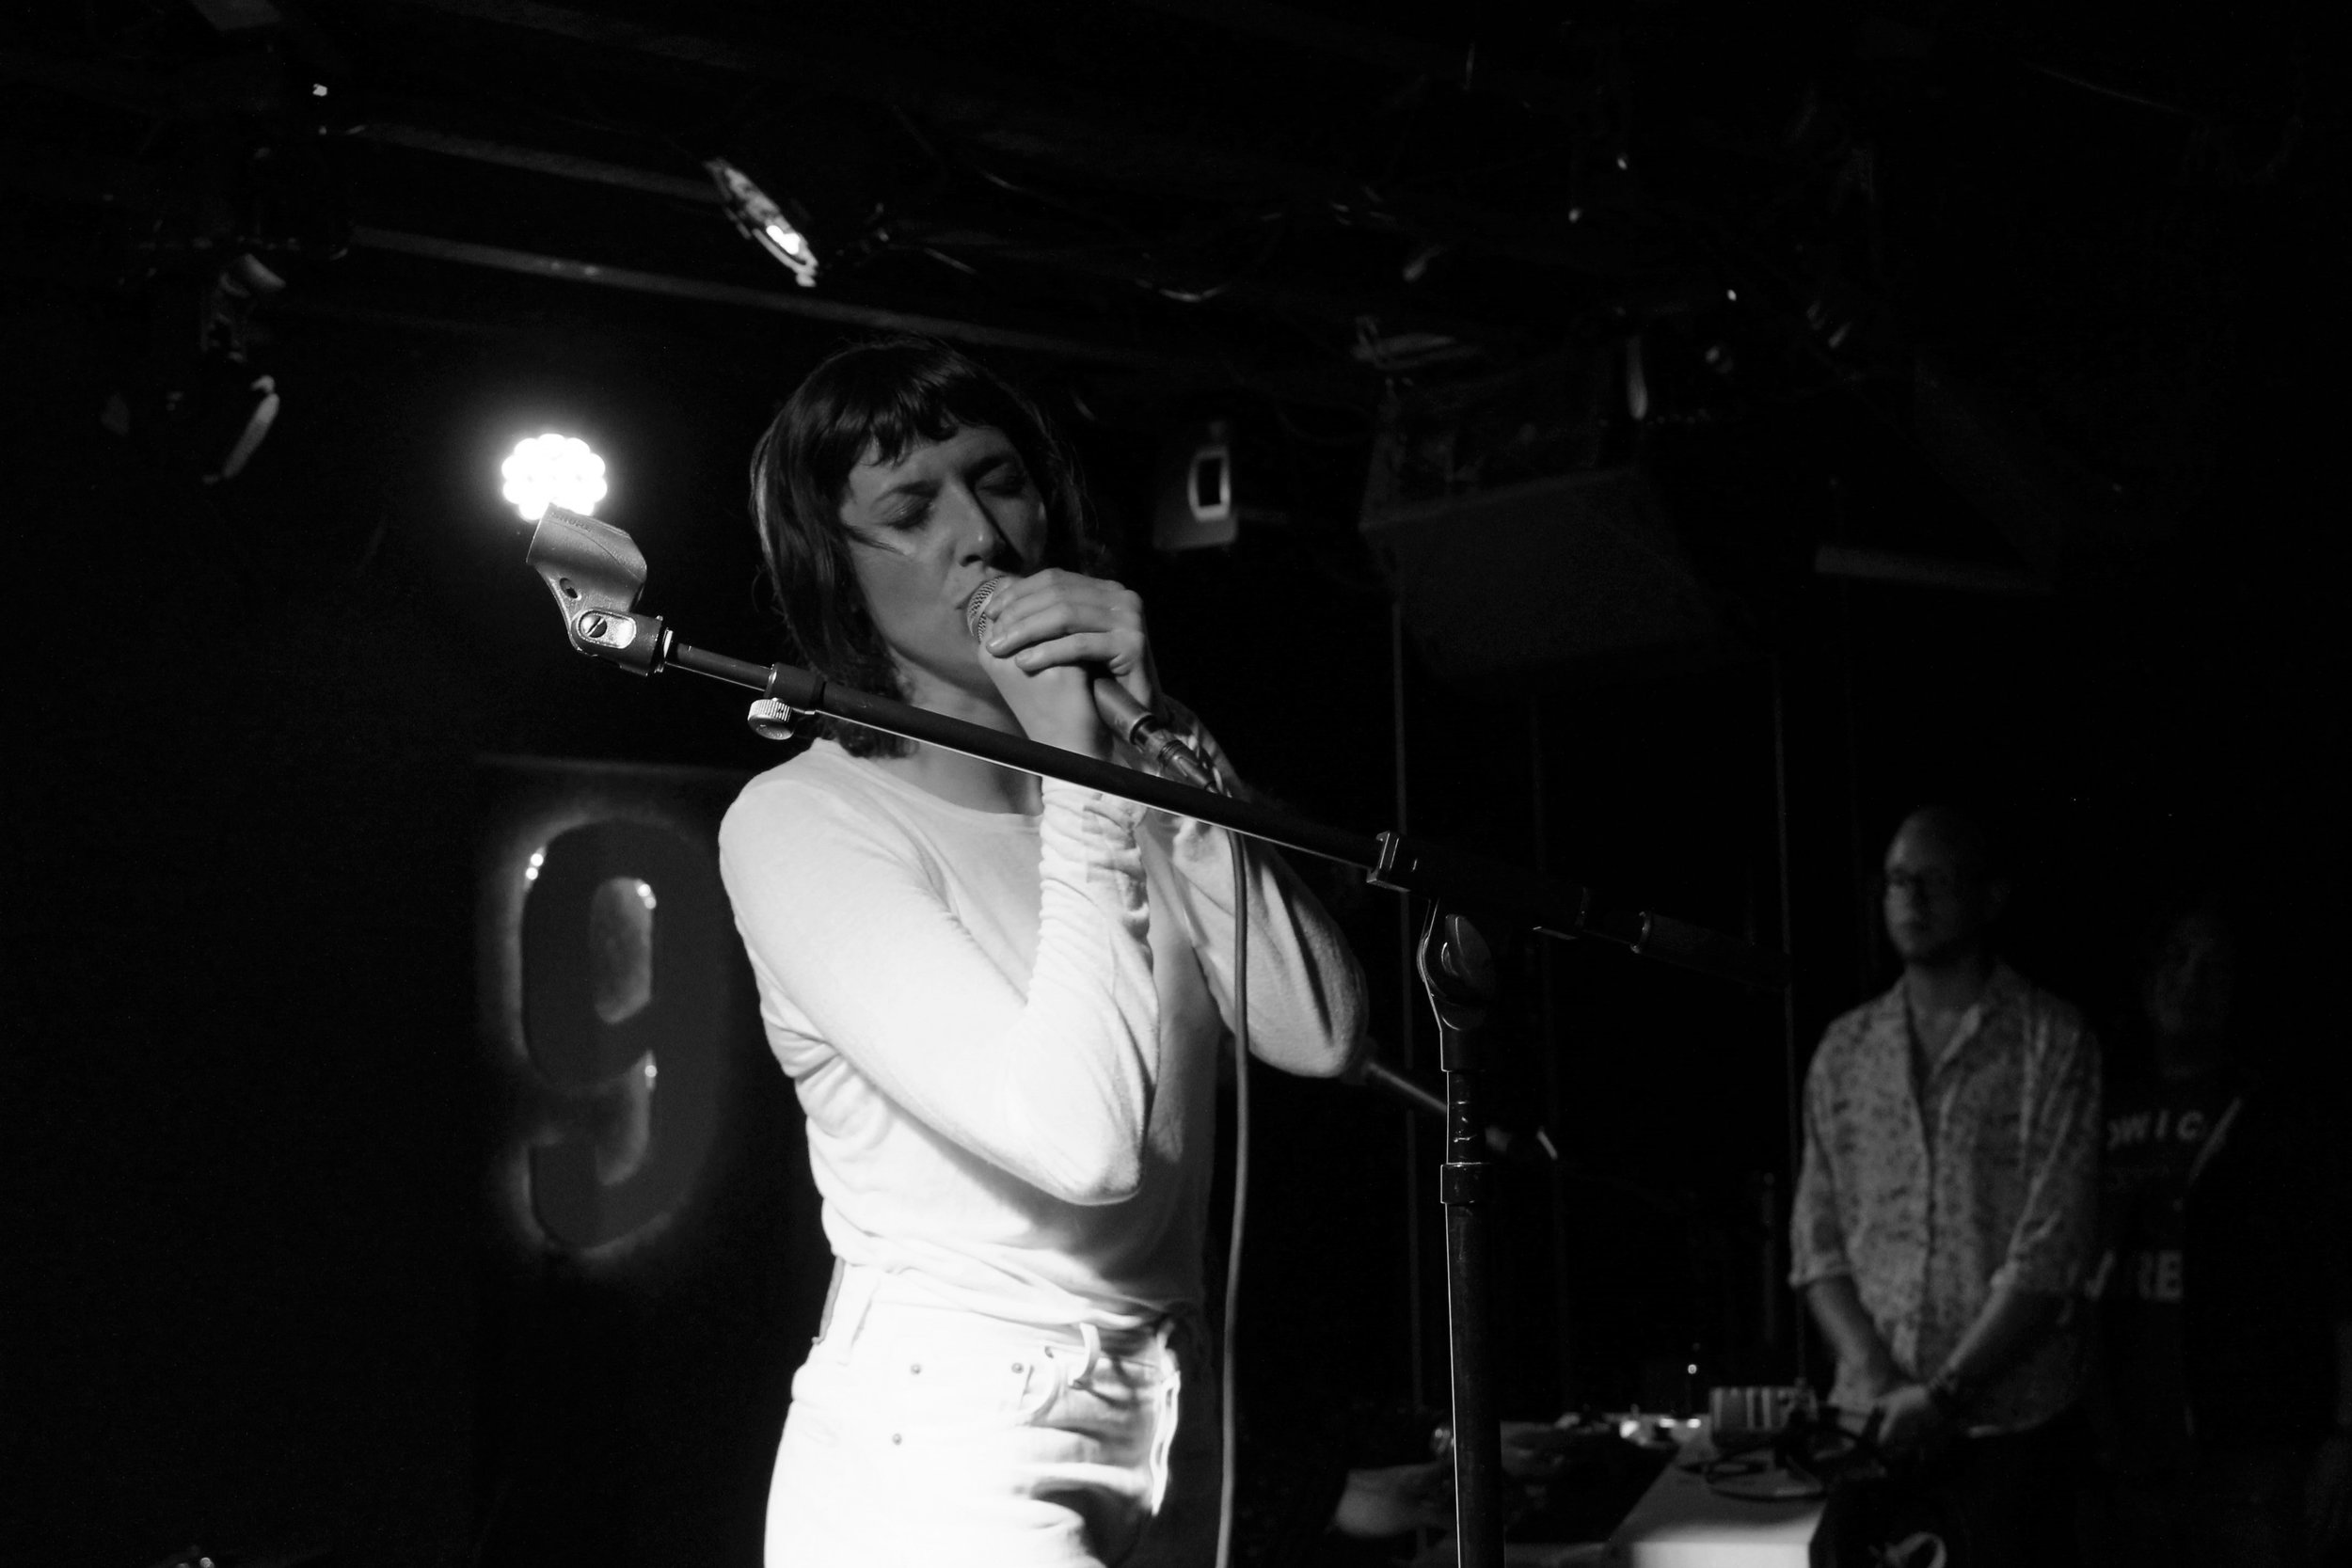 Den-Mate + Aldous Harding @ DC9 - This September, I saw Aldous Harding play at DC9. Having seen her perform twice this summer, in both DC and Brooklyn, I was already privy to her idiosyncrasies and atypical performance. Our first encounter was not what I had expected, but in a good way.